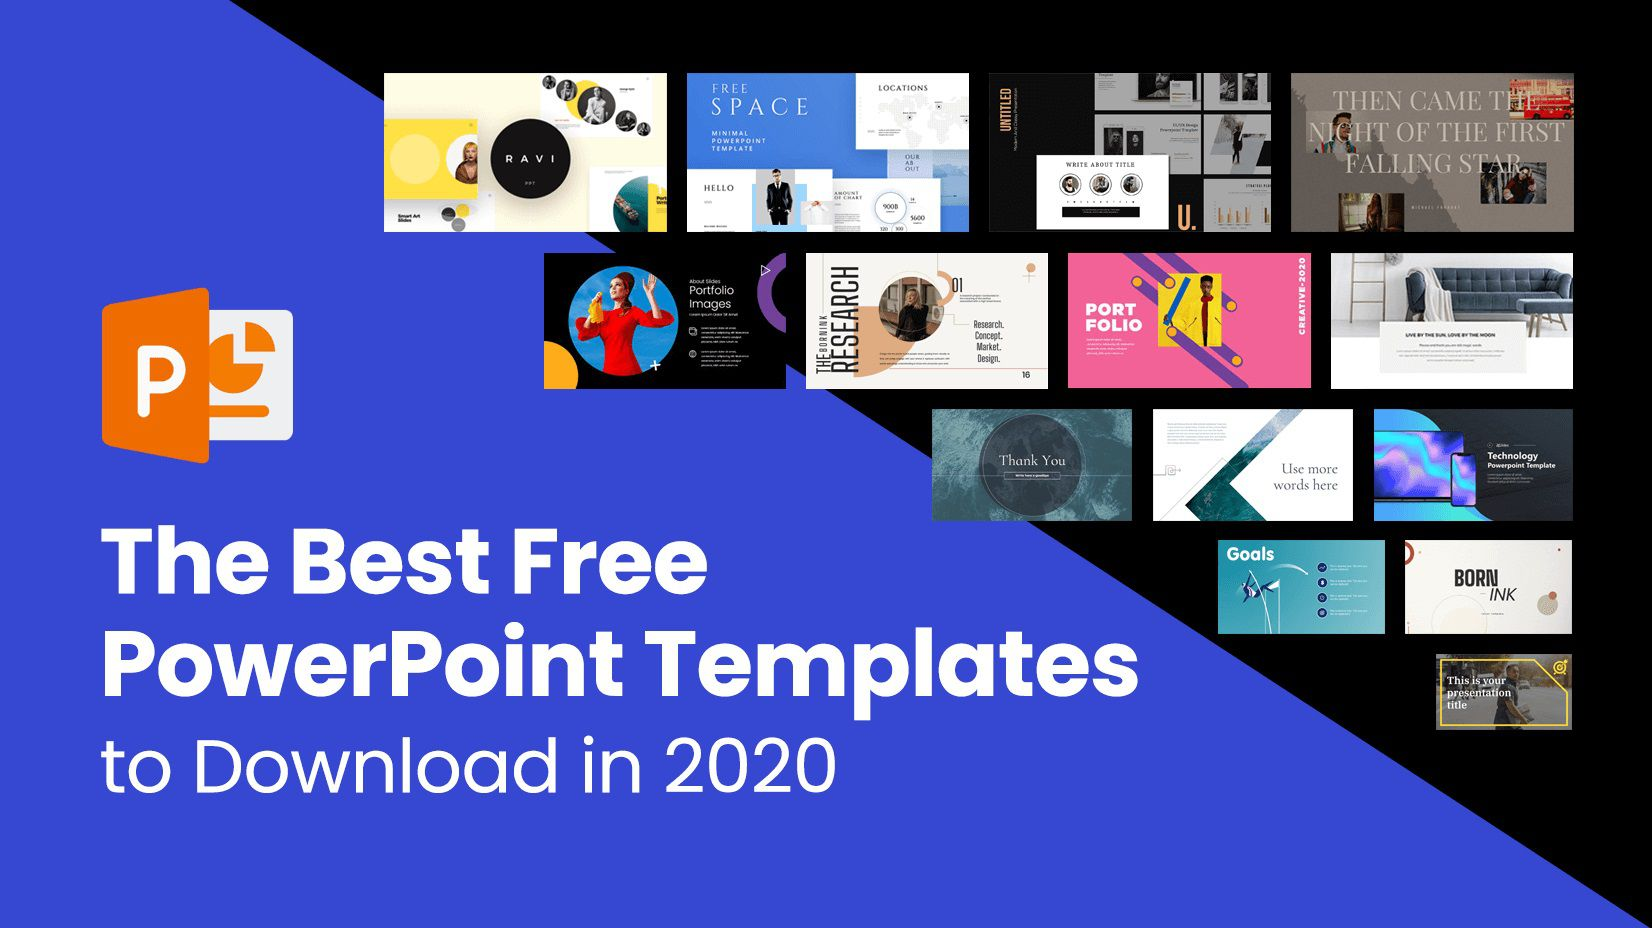 007 Amazing Best Ppt Template Free Download Inspiration  2019 Microsoft PowerpointFull